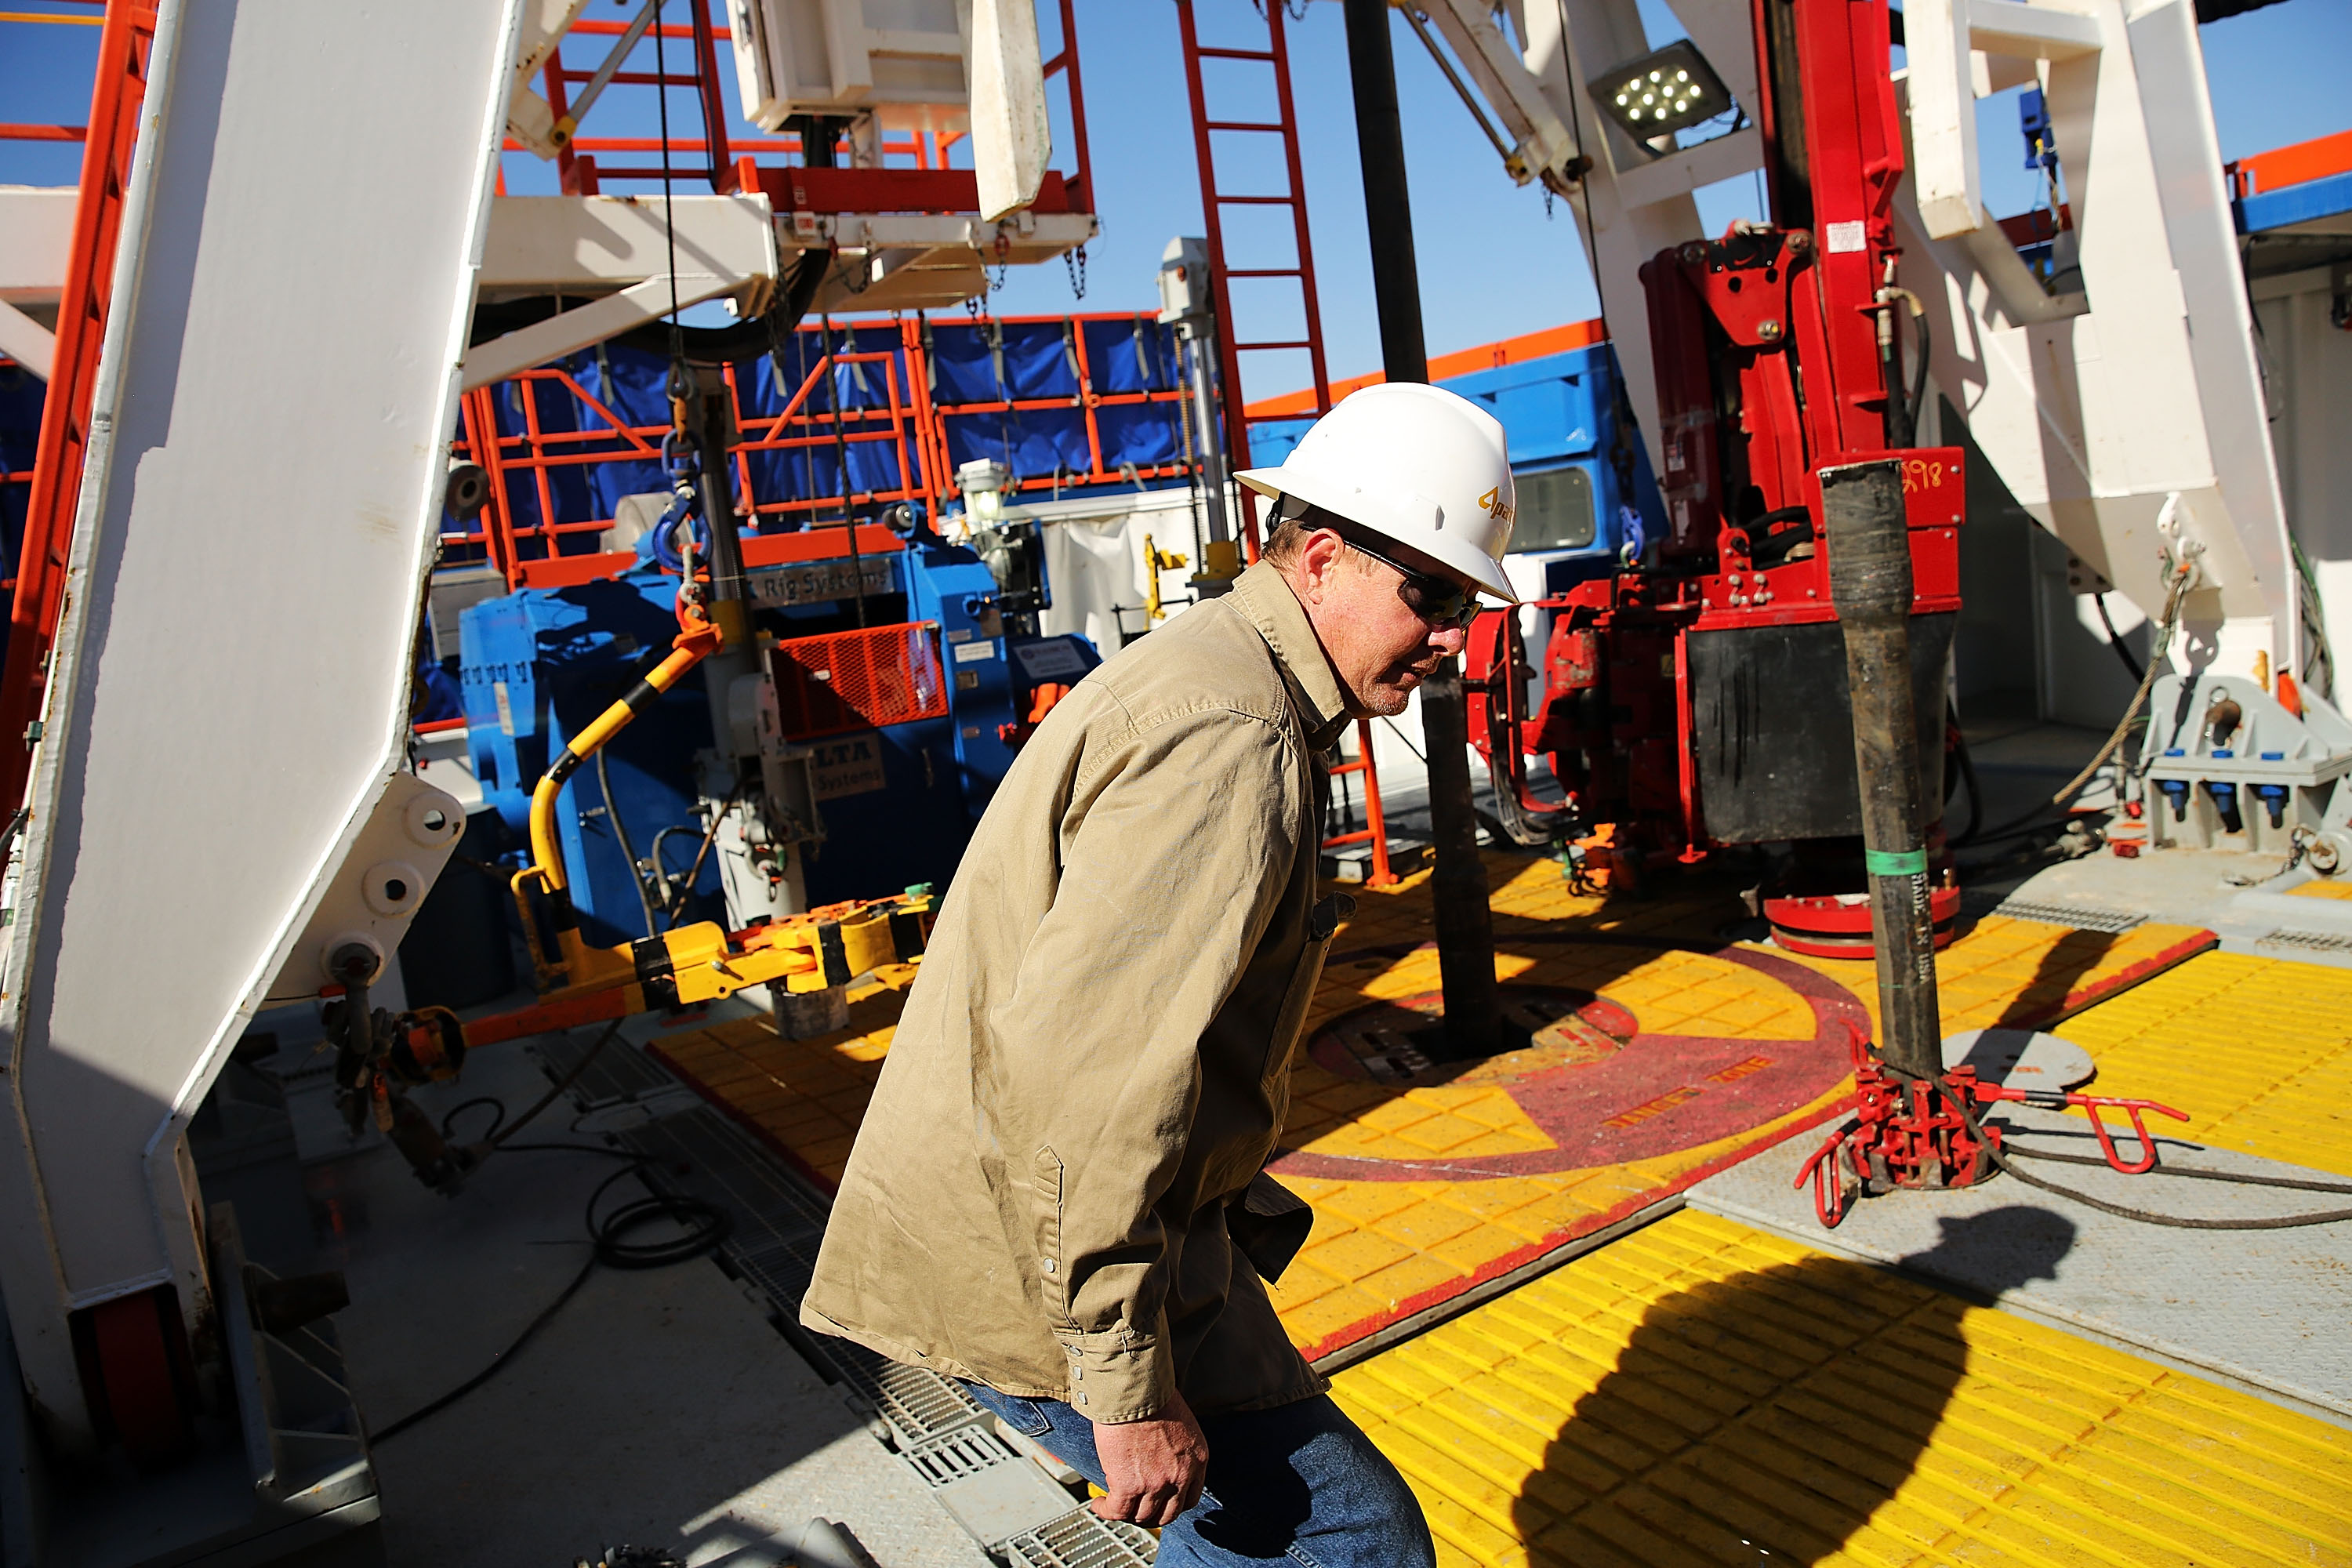 A worker with Apache Corp. is viewed at the Patterson 298 natural gas fueled drilling rig on land in the Permian Basin in 2015 in Mentone, Texas. (Spencer Platt/Getty Images)